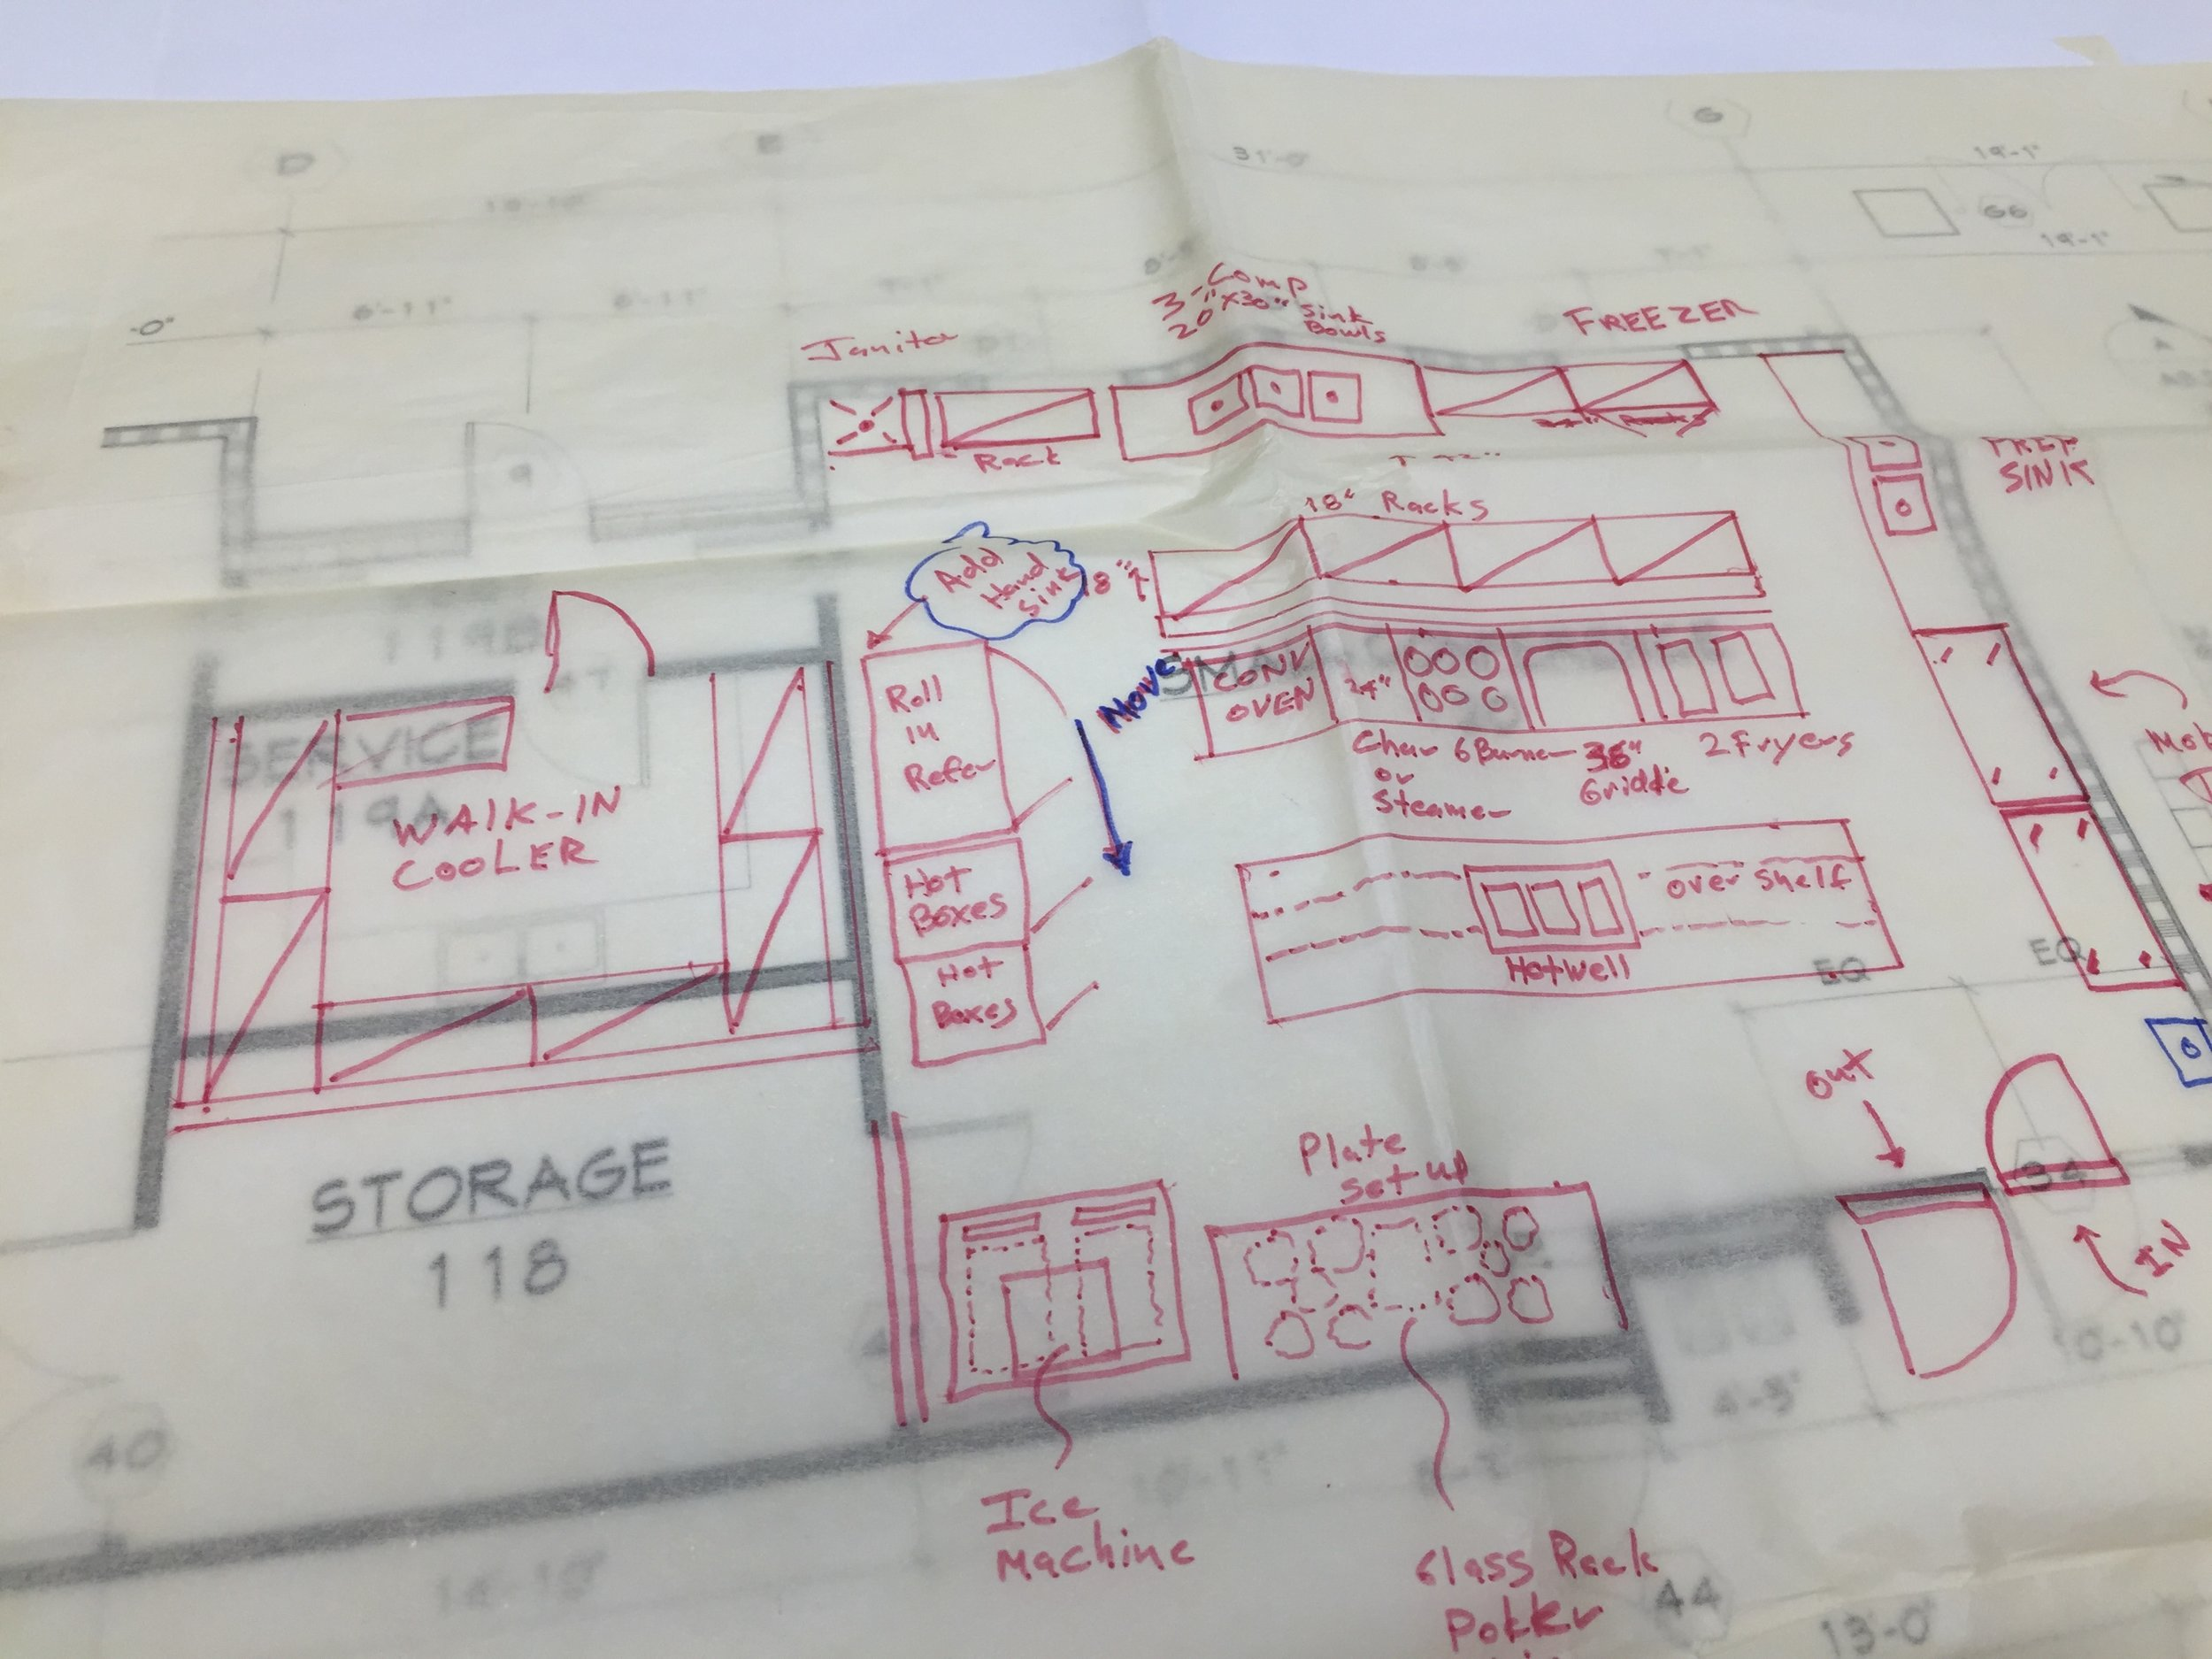 """We involve clients as part of the design """"team"""" along with architects, engineers, contractors, technology, and construction trades. By leveraging all our expertise, we reduce rework and ensure an optimal solution for the space and client needs."""